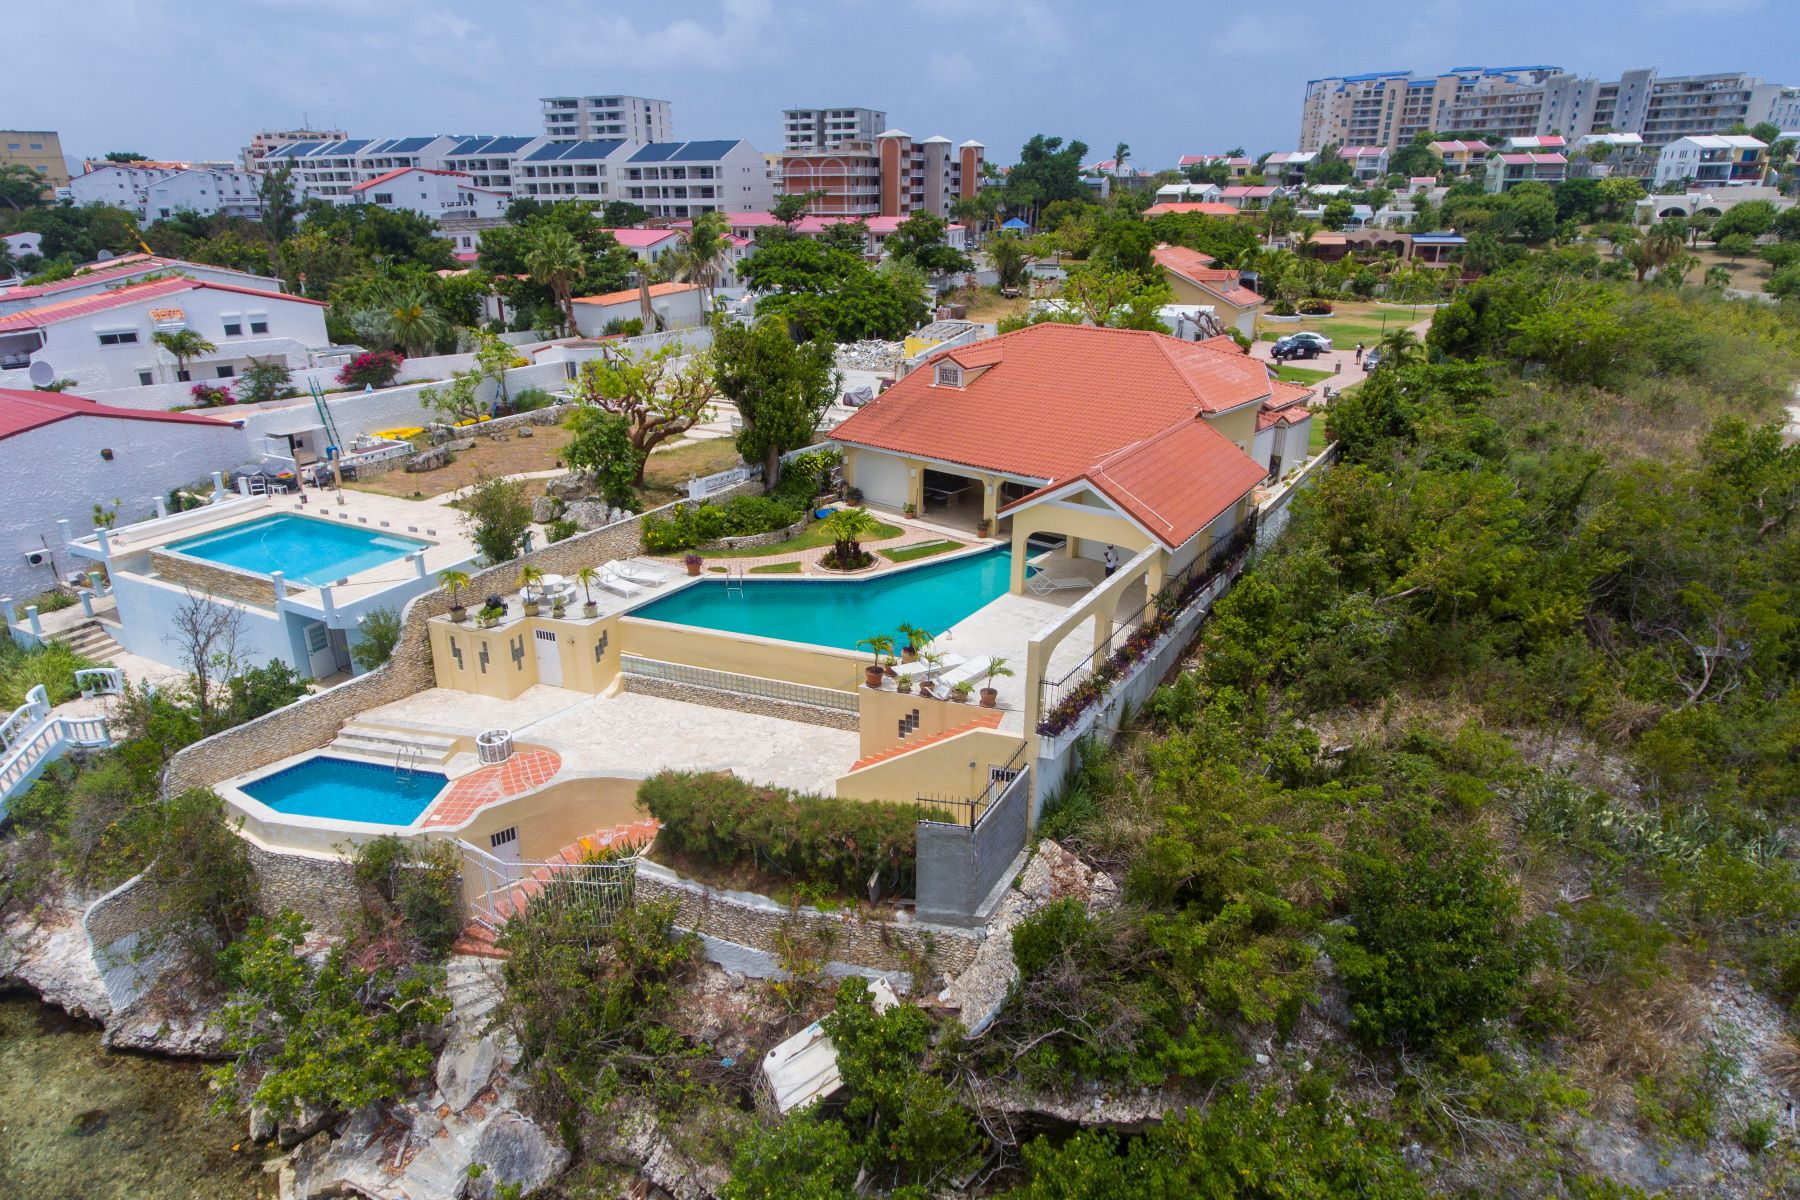 Single Family Homes for Sale at Villa di Famaglia Cozzolino Cupecoy, Cities In Sint Maarten St. Maarten